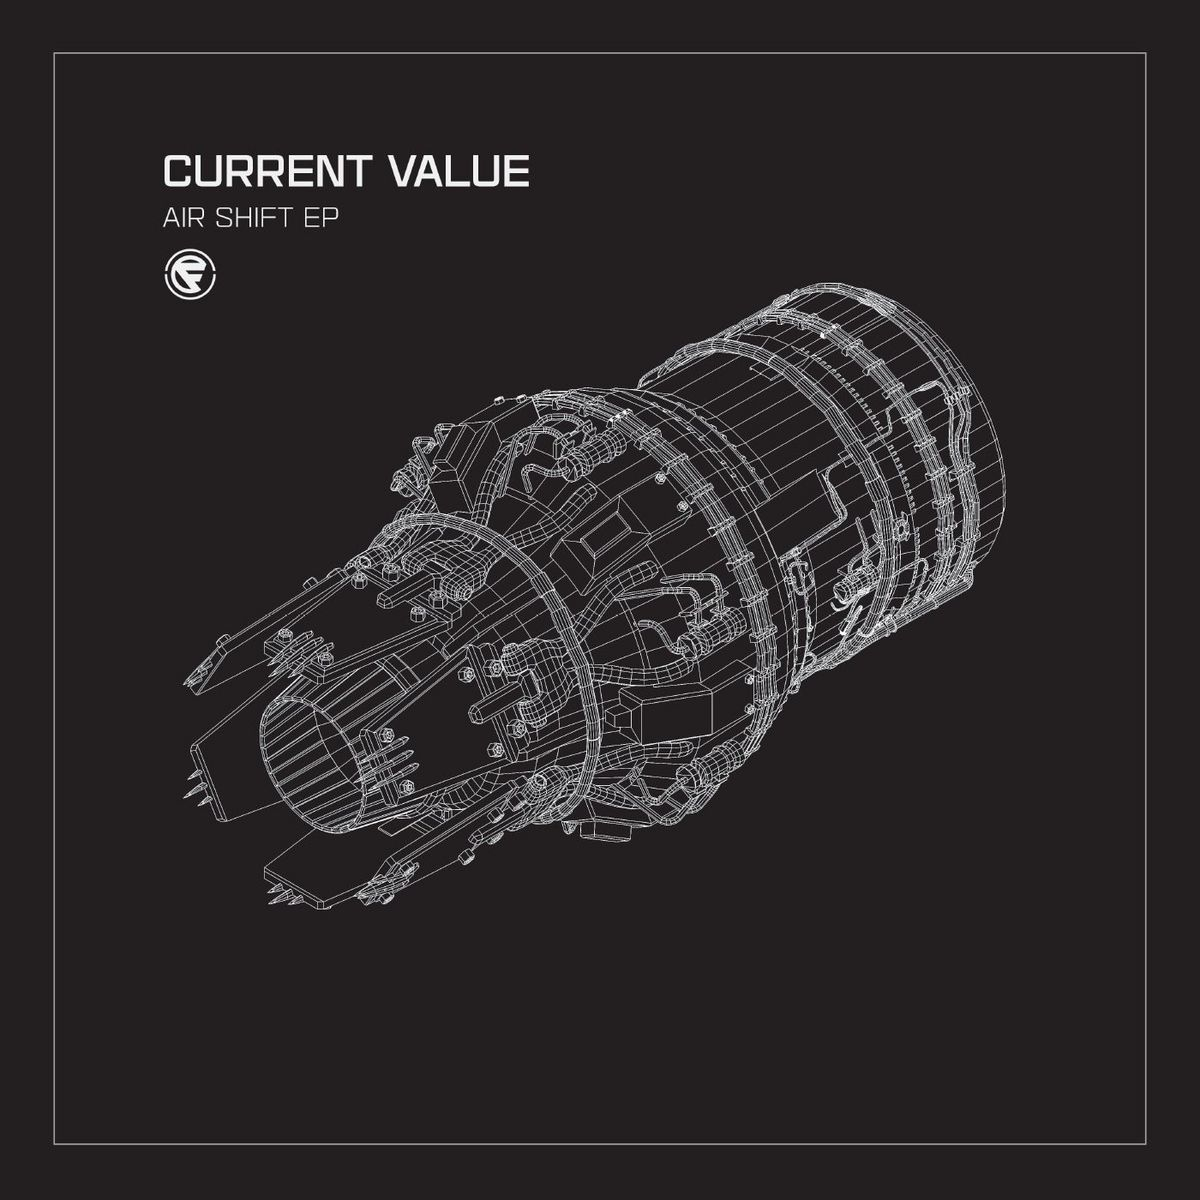 current-value-air-shift-ep